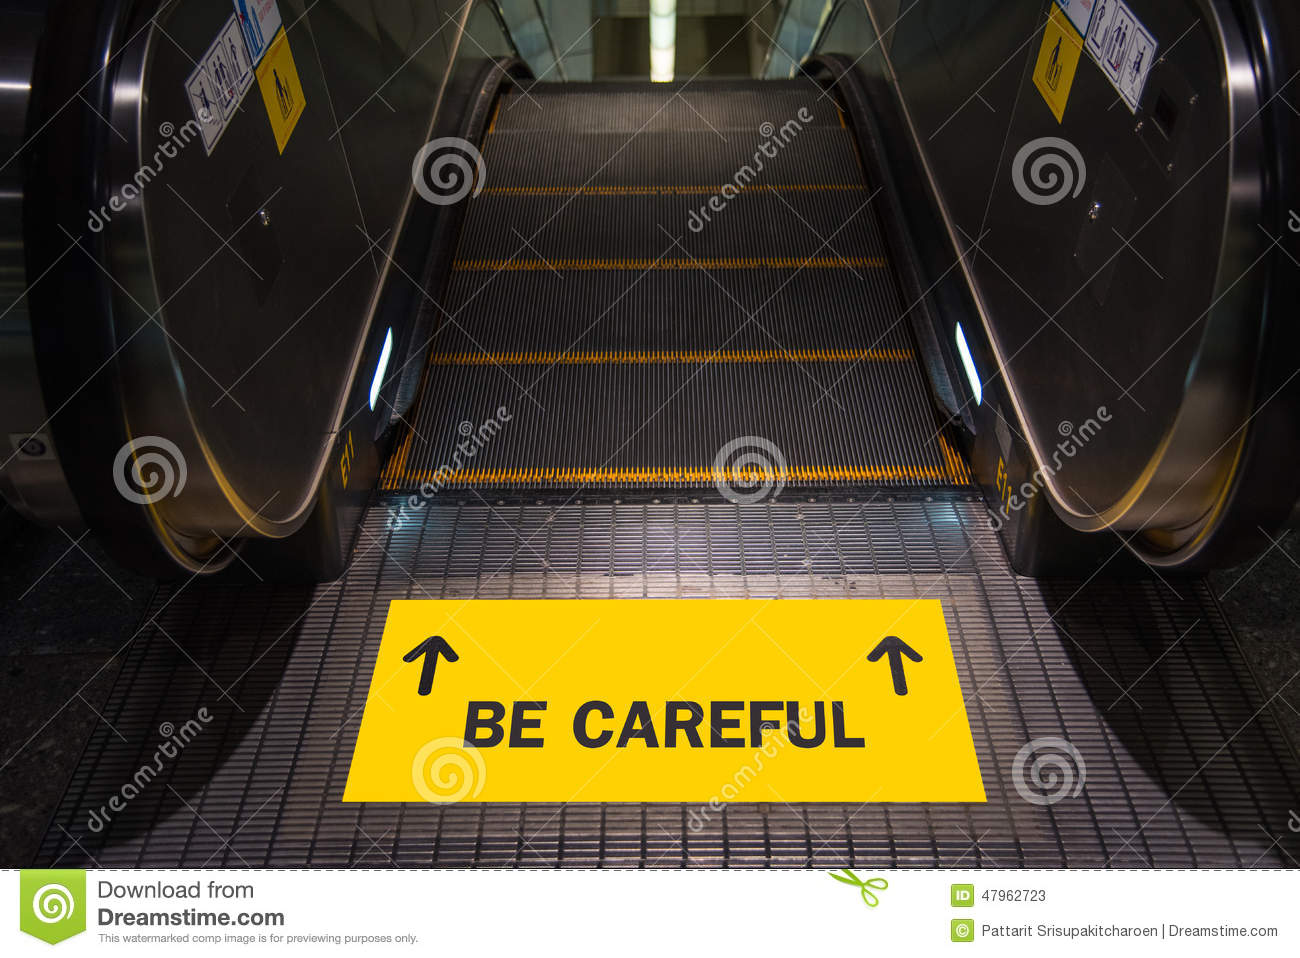 Be Careful Text On Yellow Label At Escalator Stock Photo